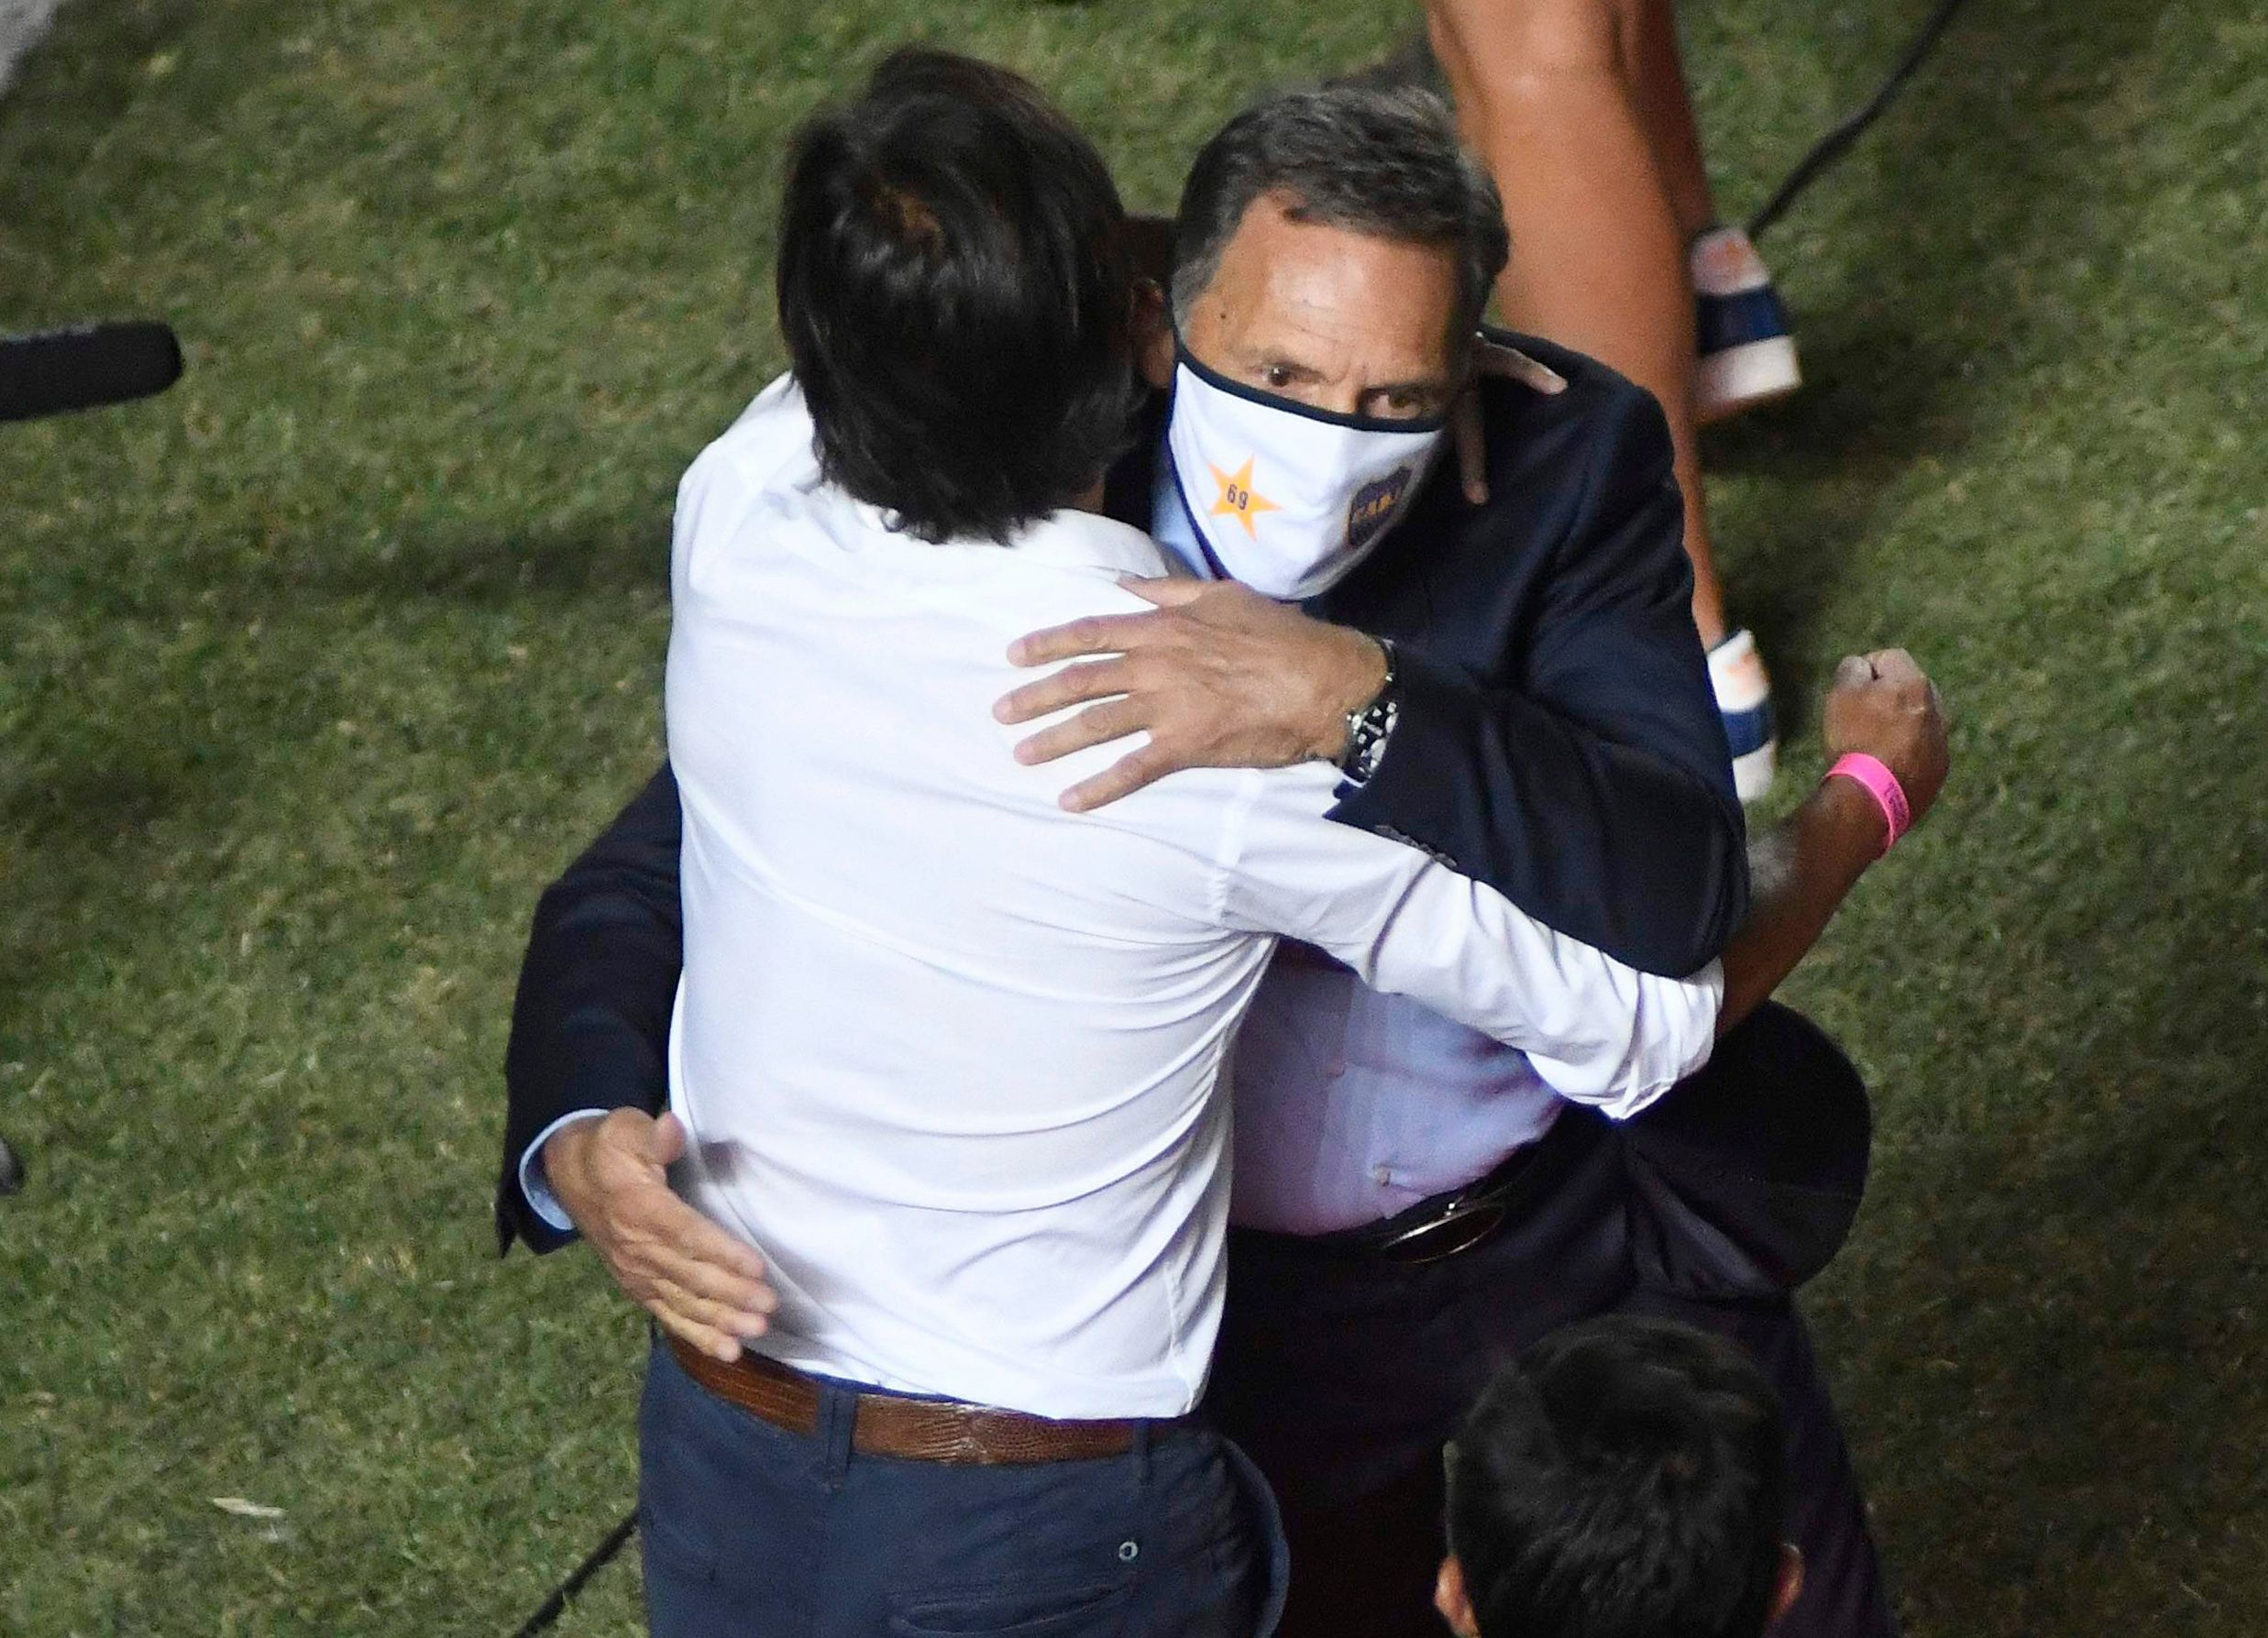 The hug between Miguel Ángel Russo and Archu Sanguinetti on the threshold of the match (REUTERS / Andres Larrovere)